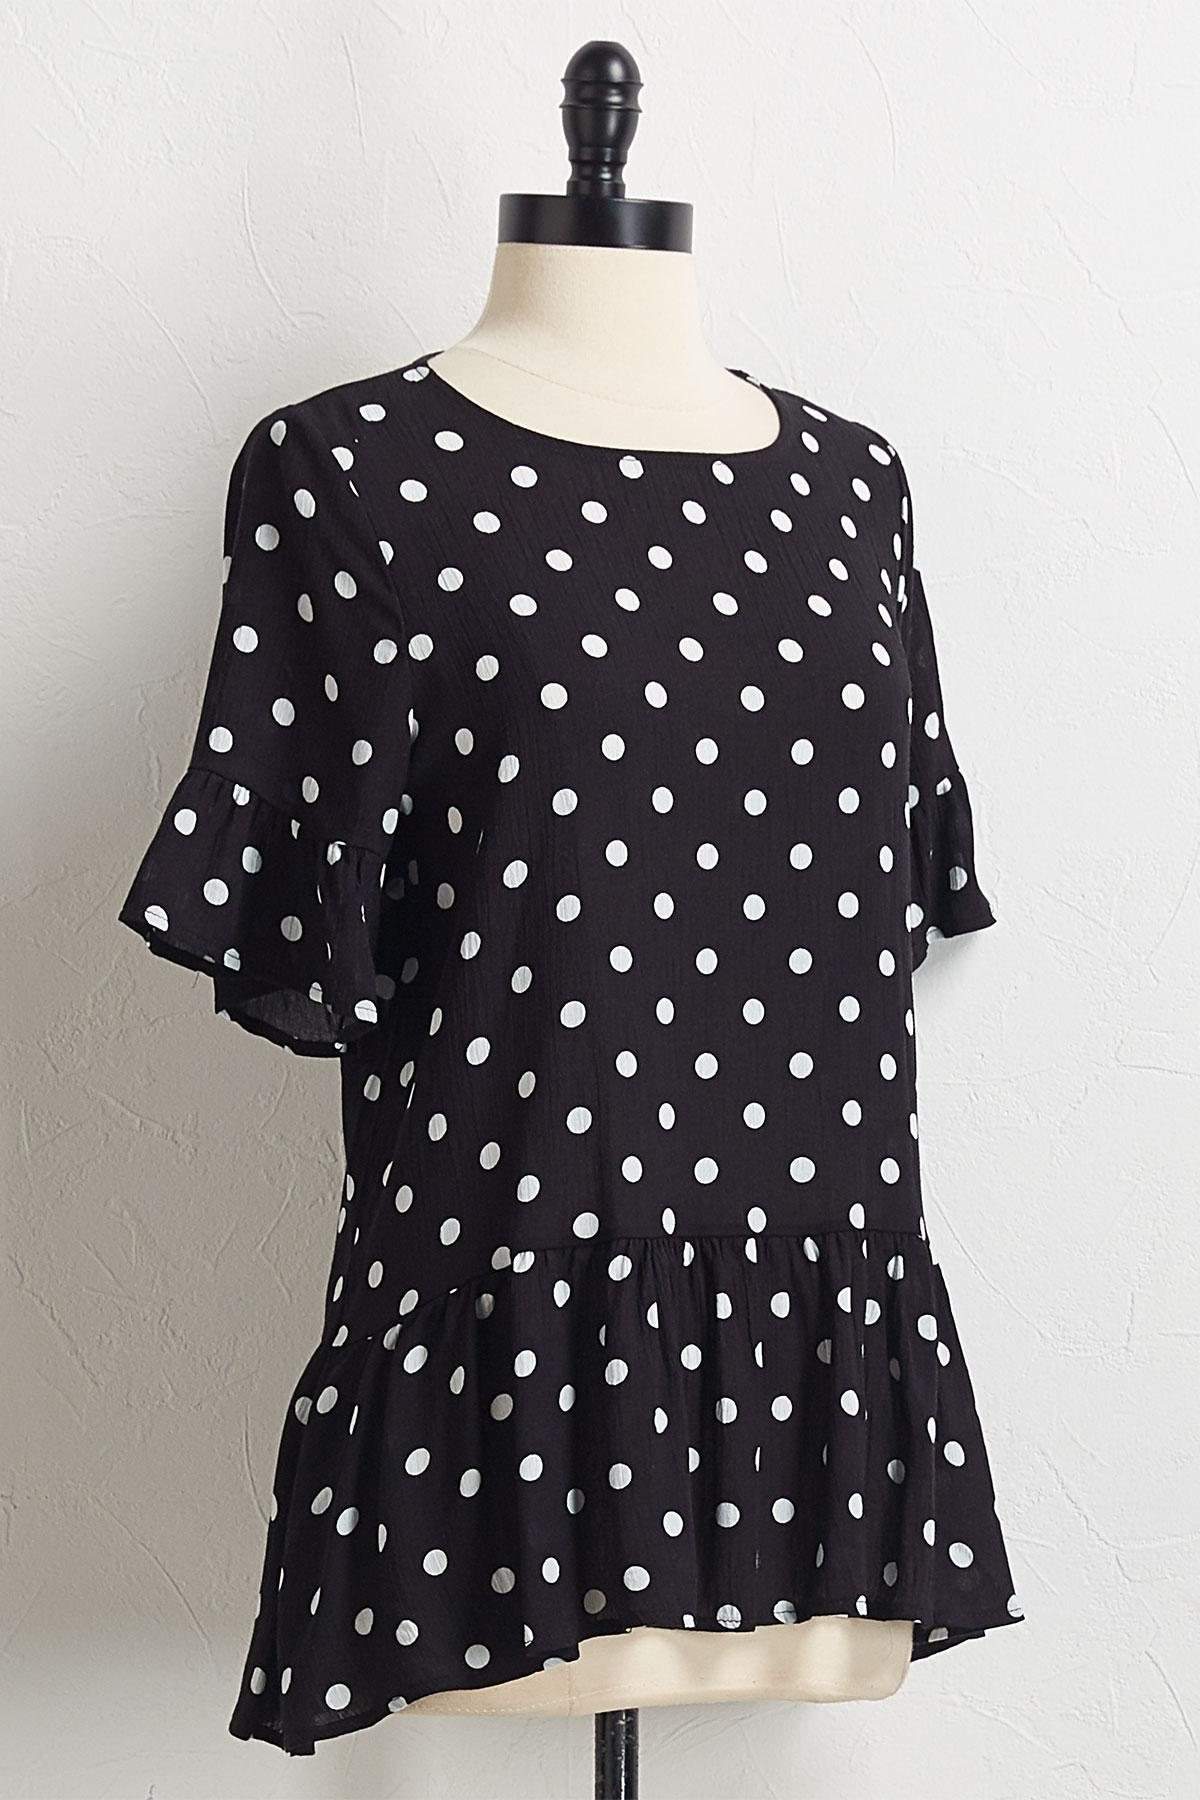 Polka Dot Peplum Top